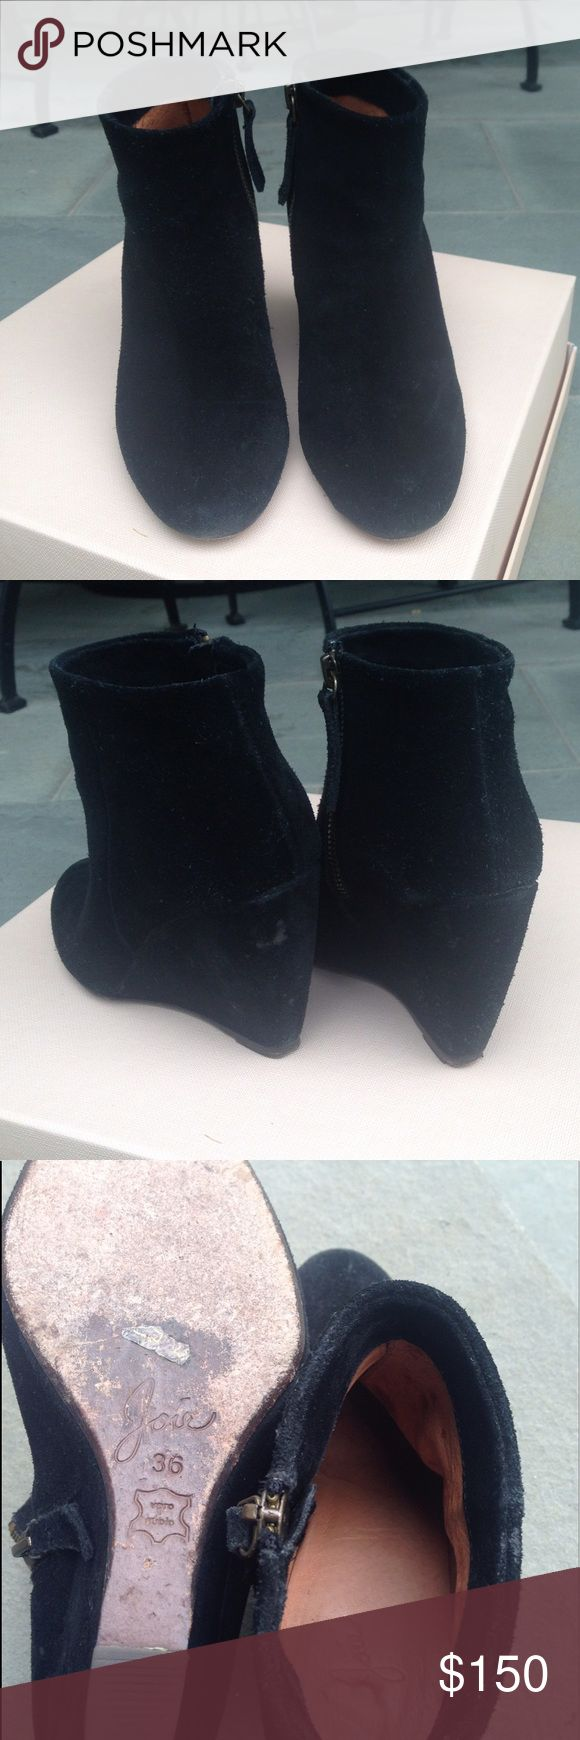 Joie Black Suede Wedge Boots, size 5 Gently worn Joie Shoes Ankle Boots & Booties